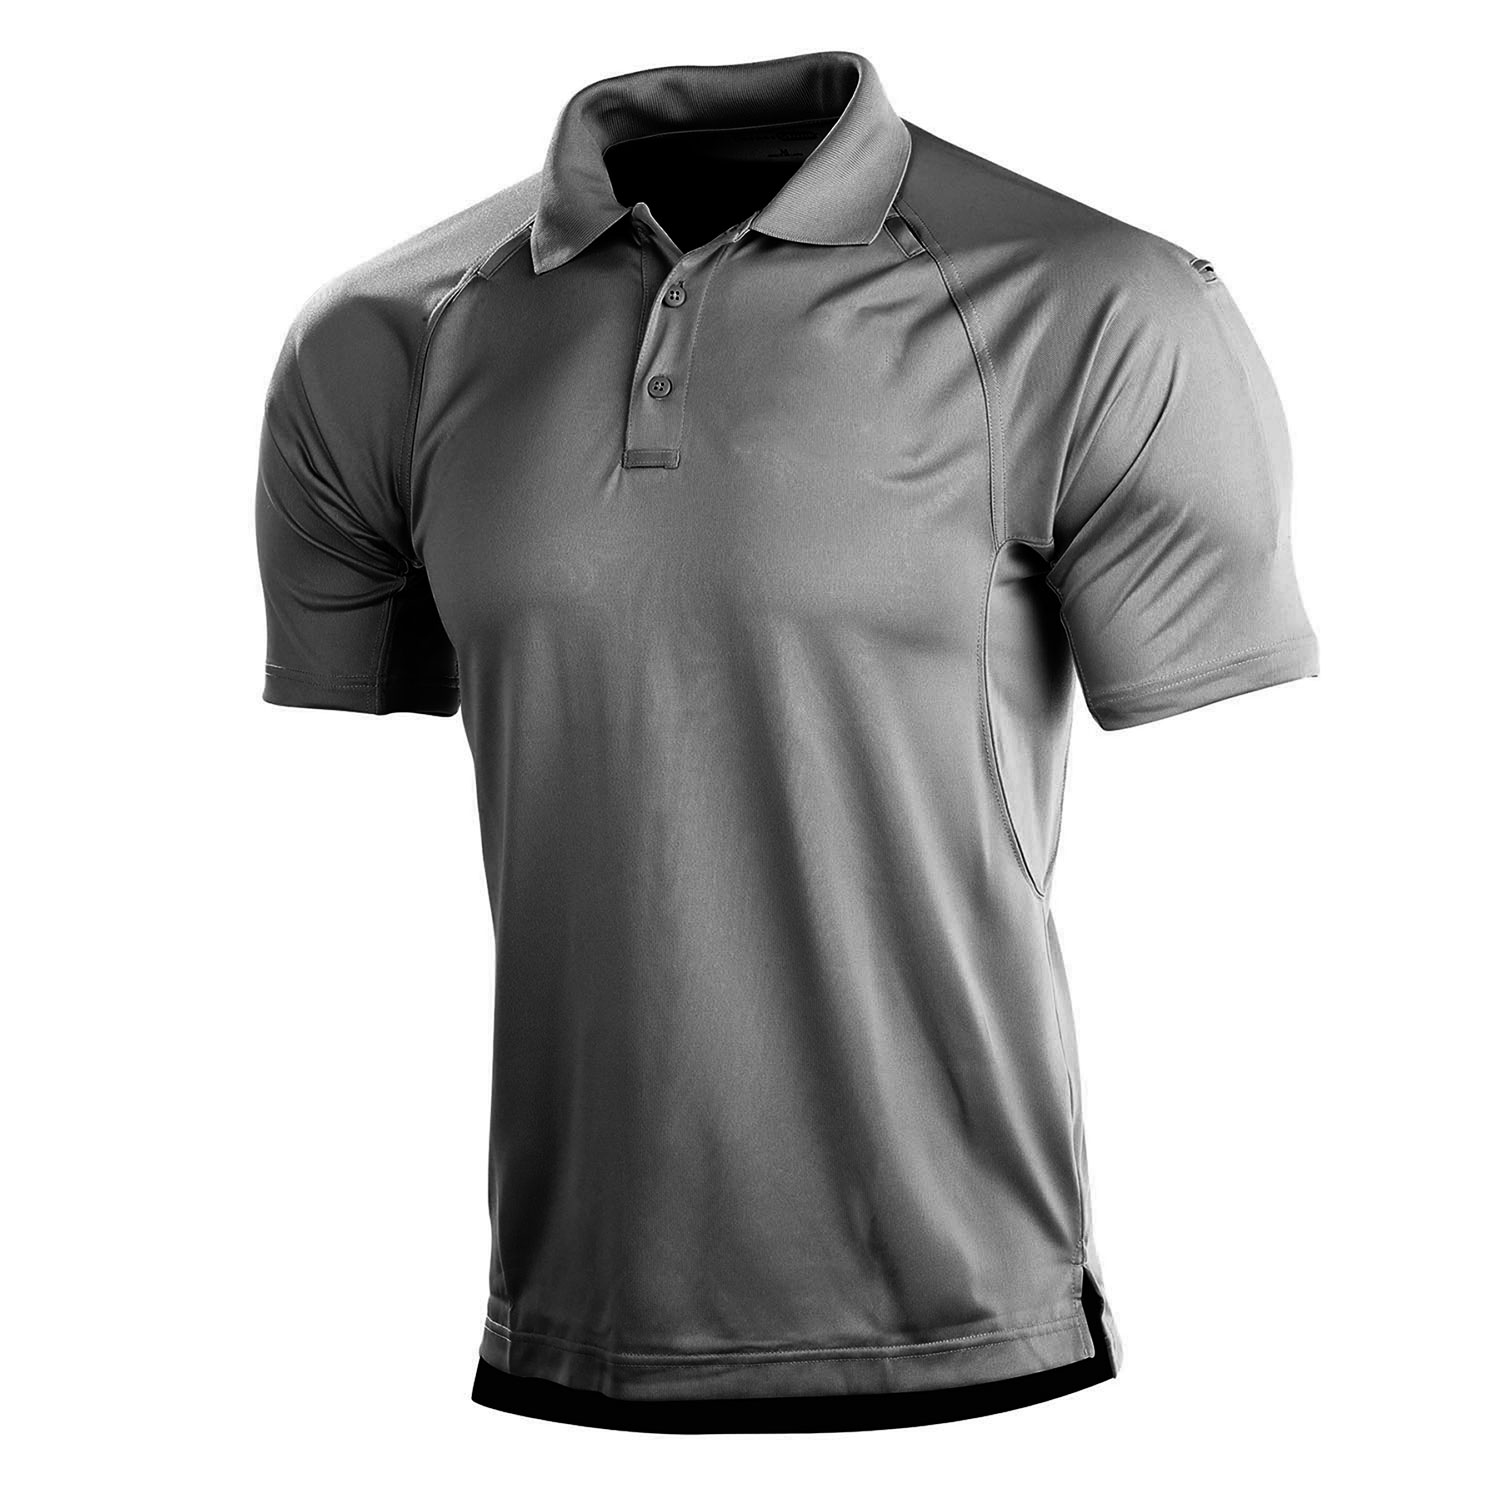 4x Polo Shirts For Men